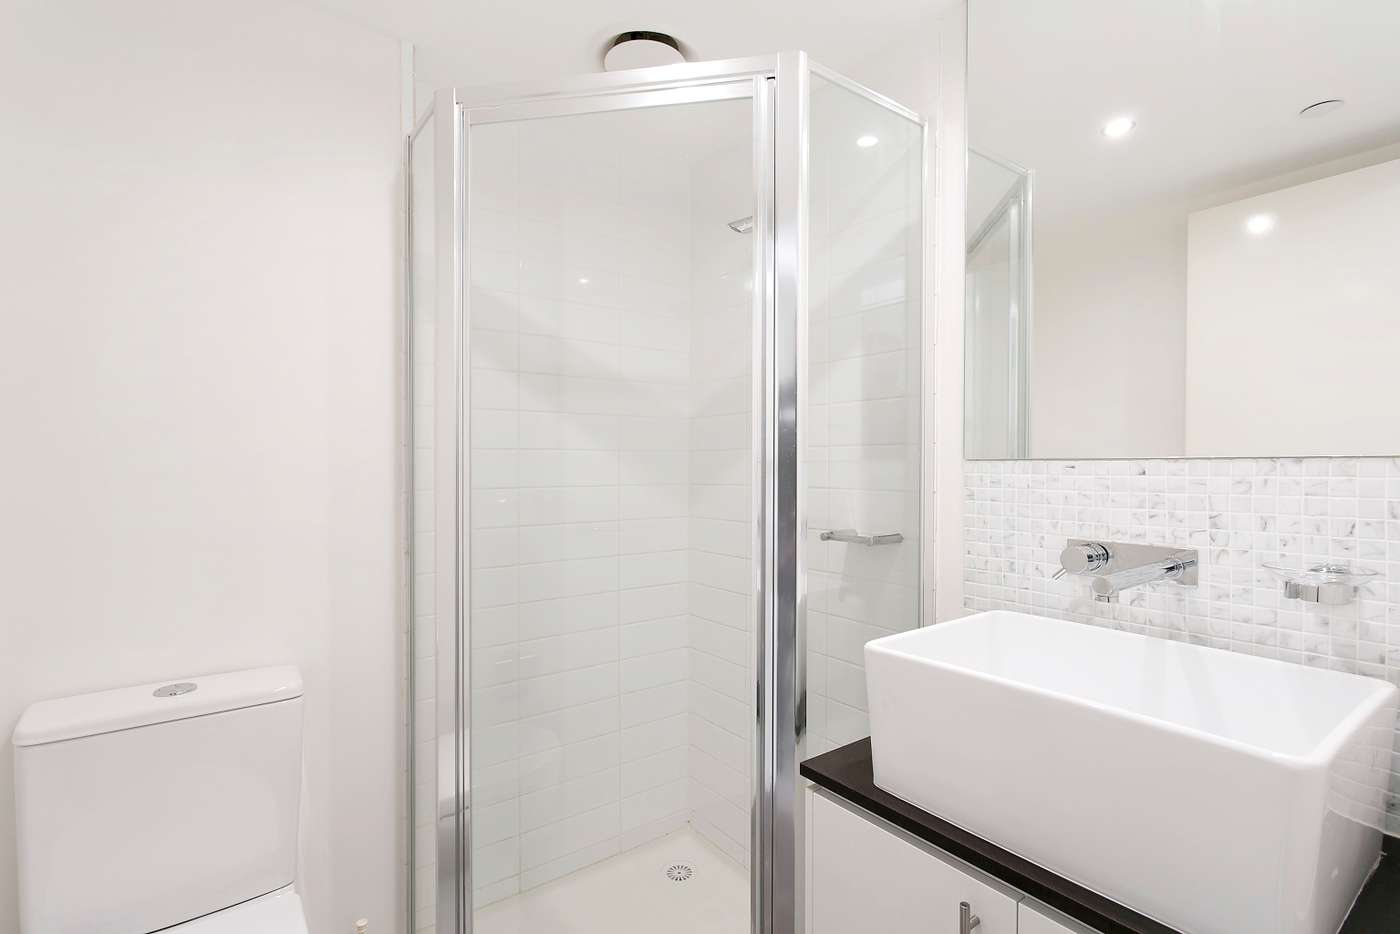 Fifth view of Homely apartment listing, 1601/8 Exploration Lane, Melbourne VIC 3000